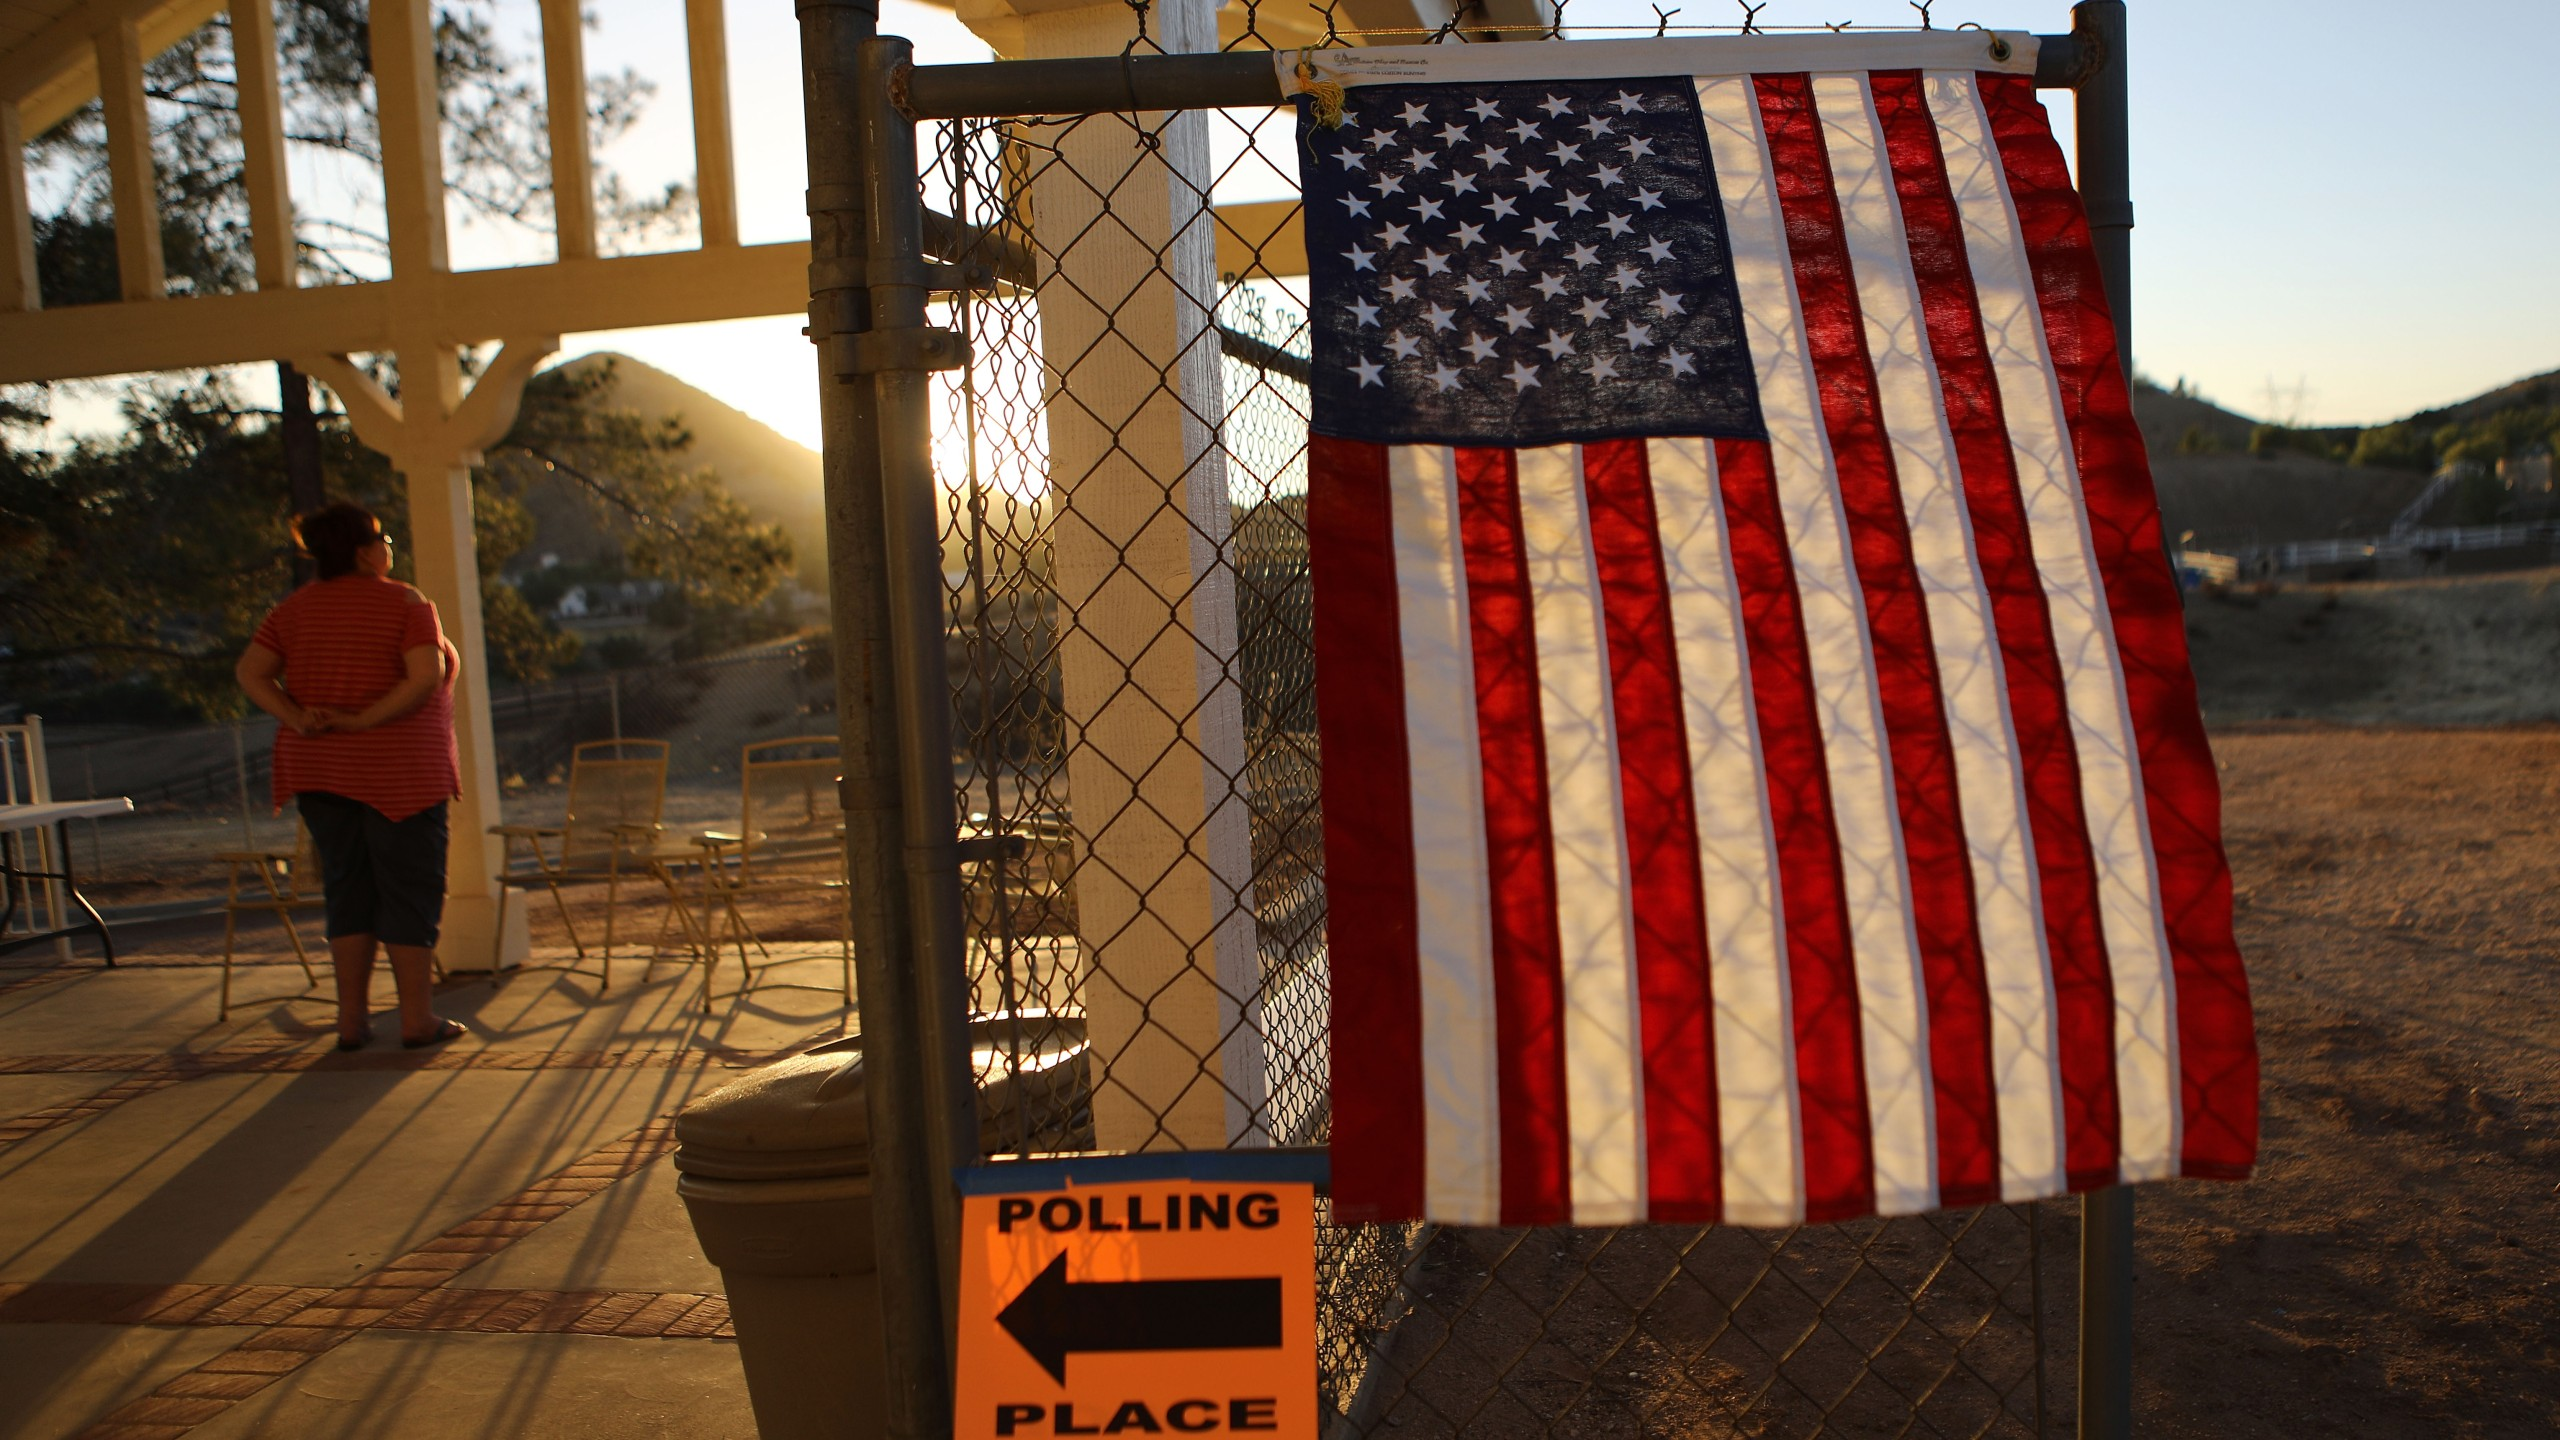 A voter takes in the view outside a polling place after casting her ballot in California's 25th Congressional district on Nov. 6, 2018 in Agua Dulce, California. (Credit: Mario Tama/Getty Images)